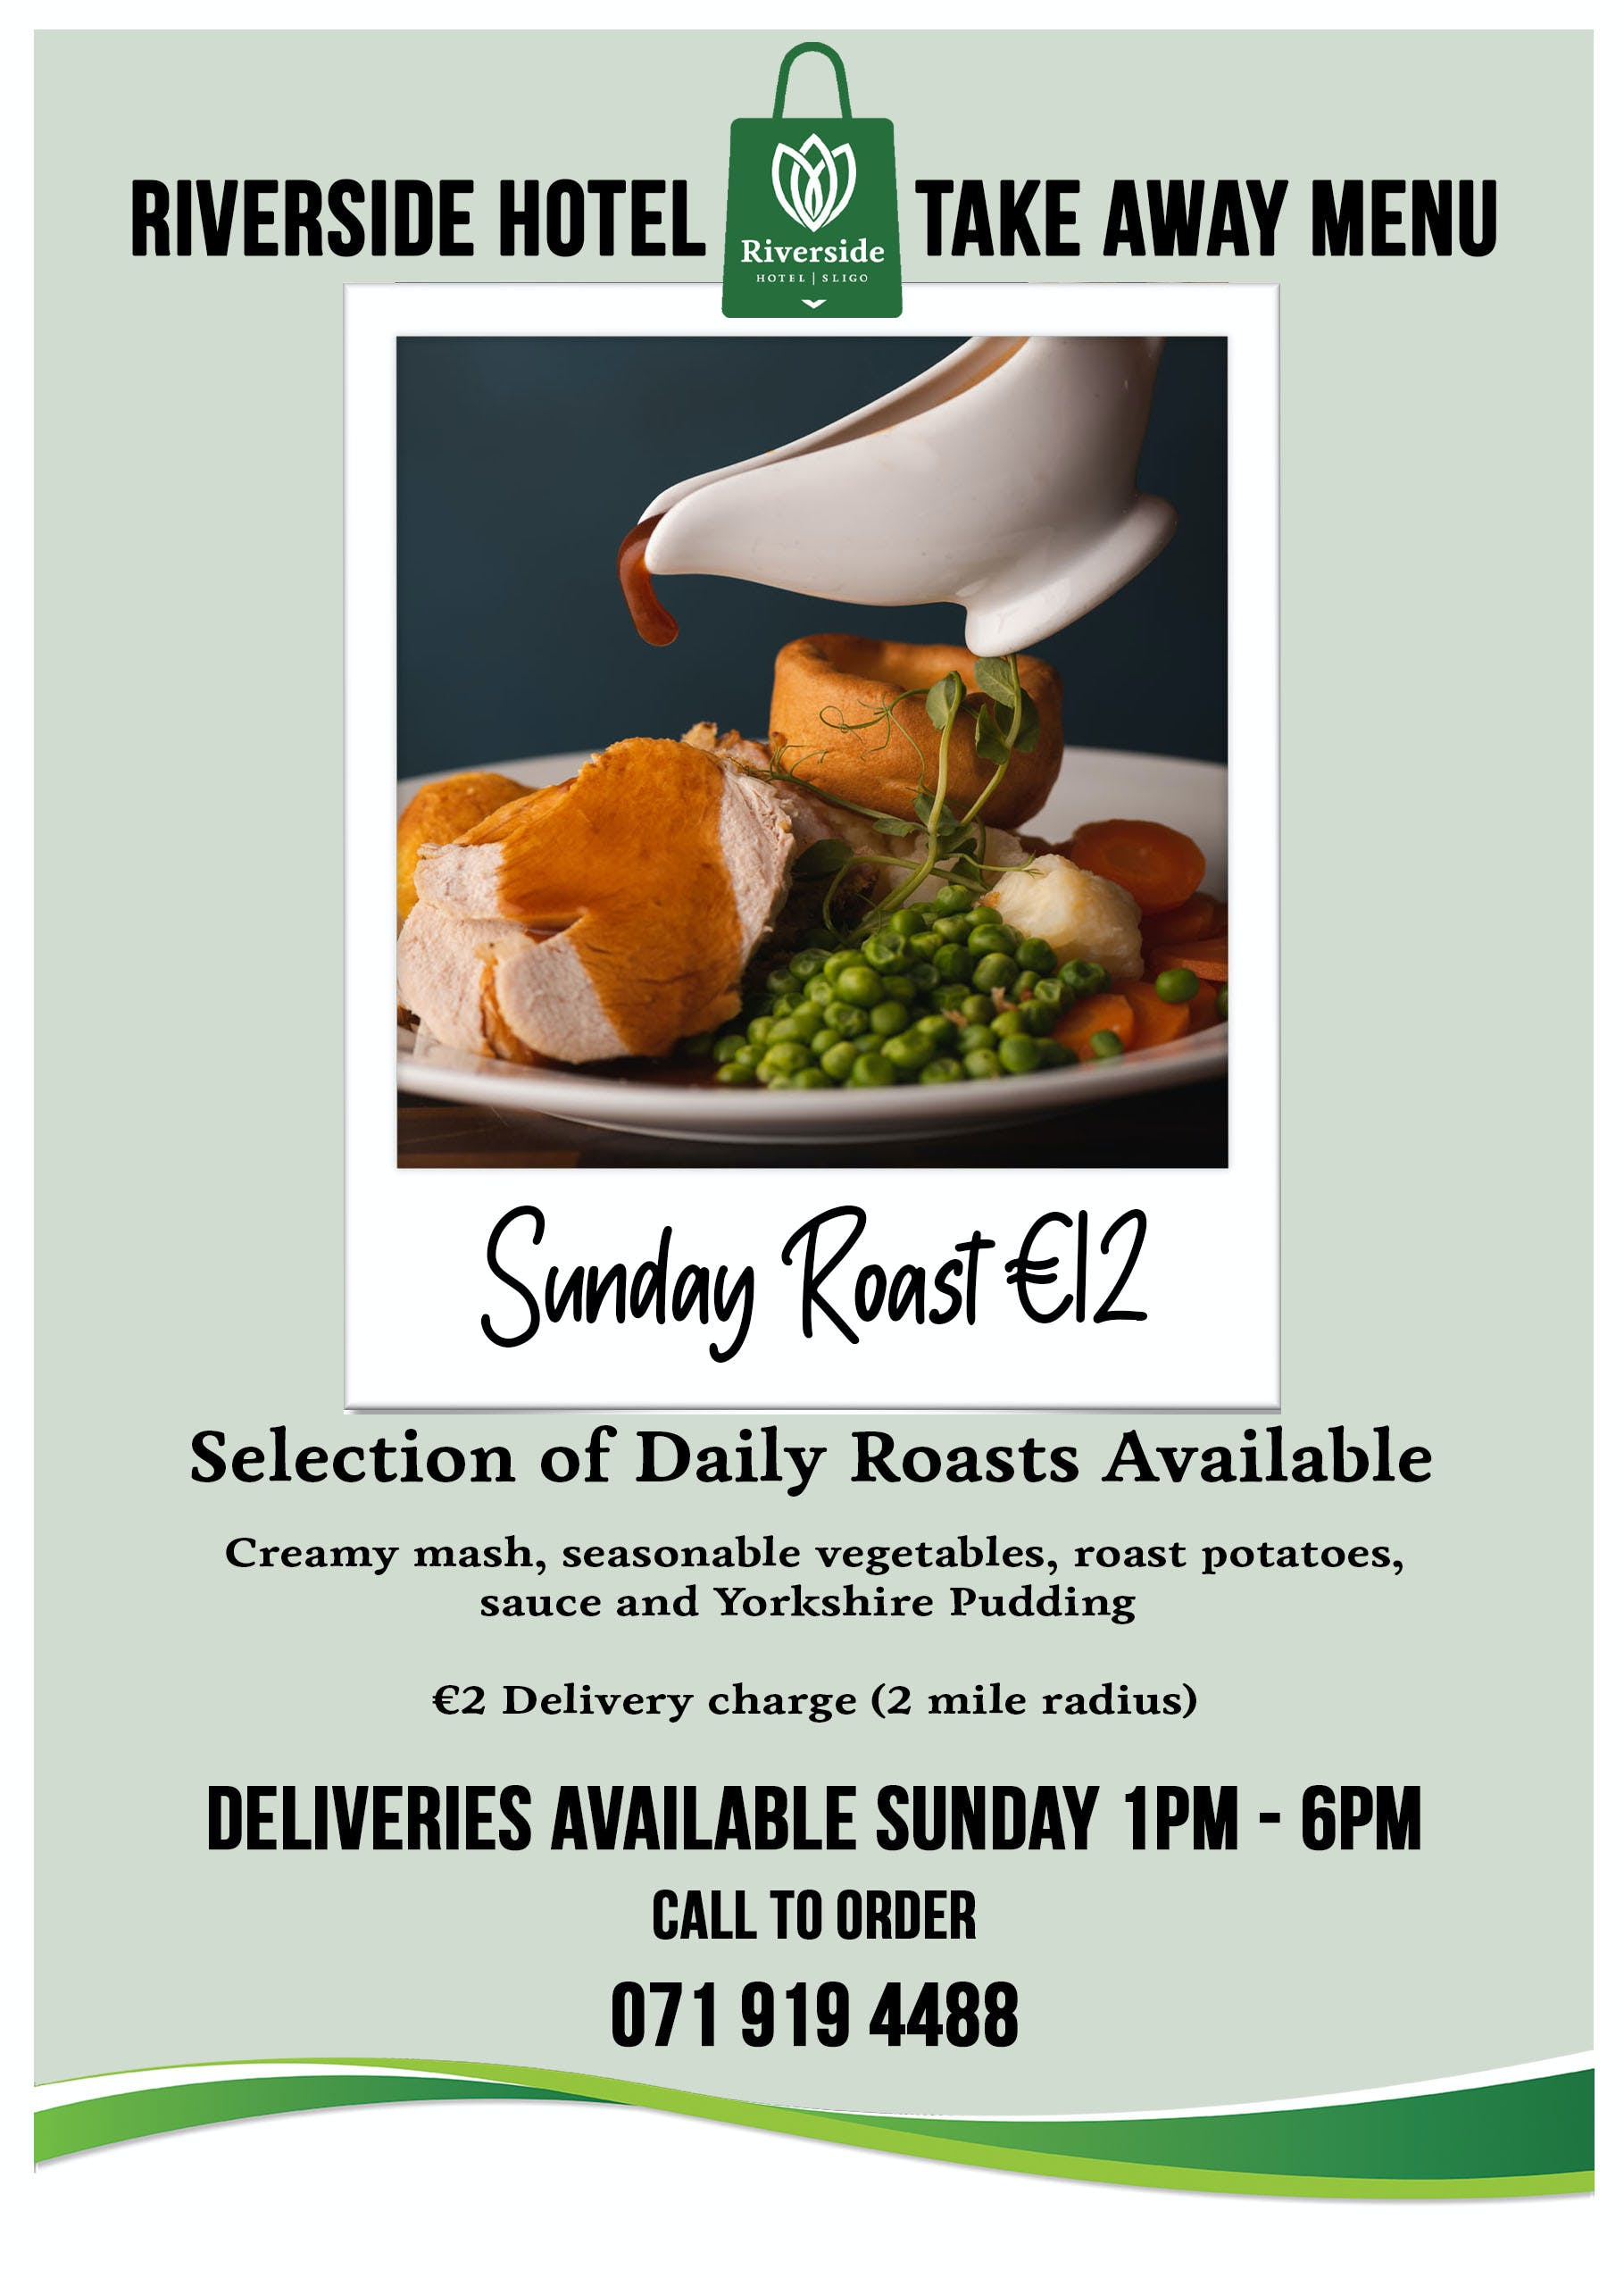 Sunday Roast take aways from Riverside Hotel Sligo.